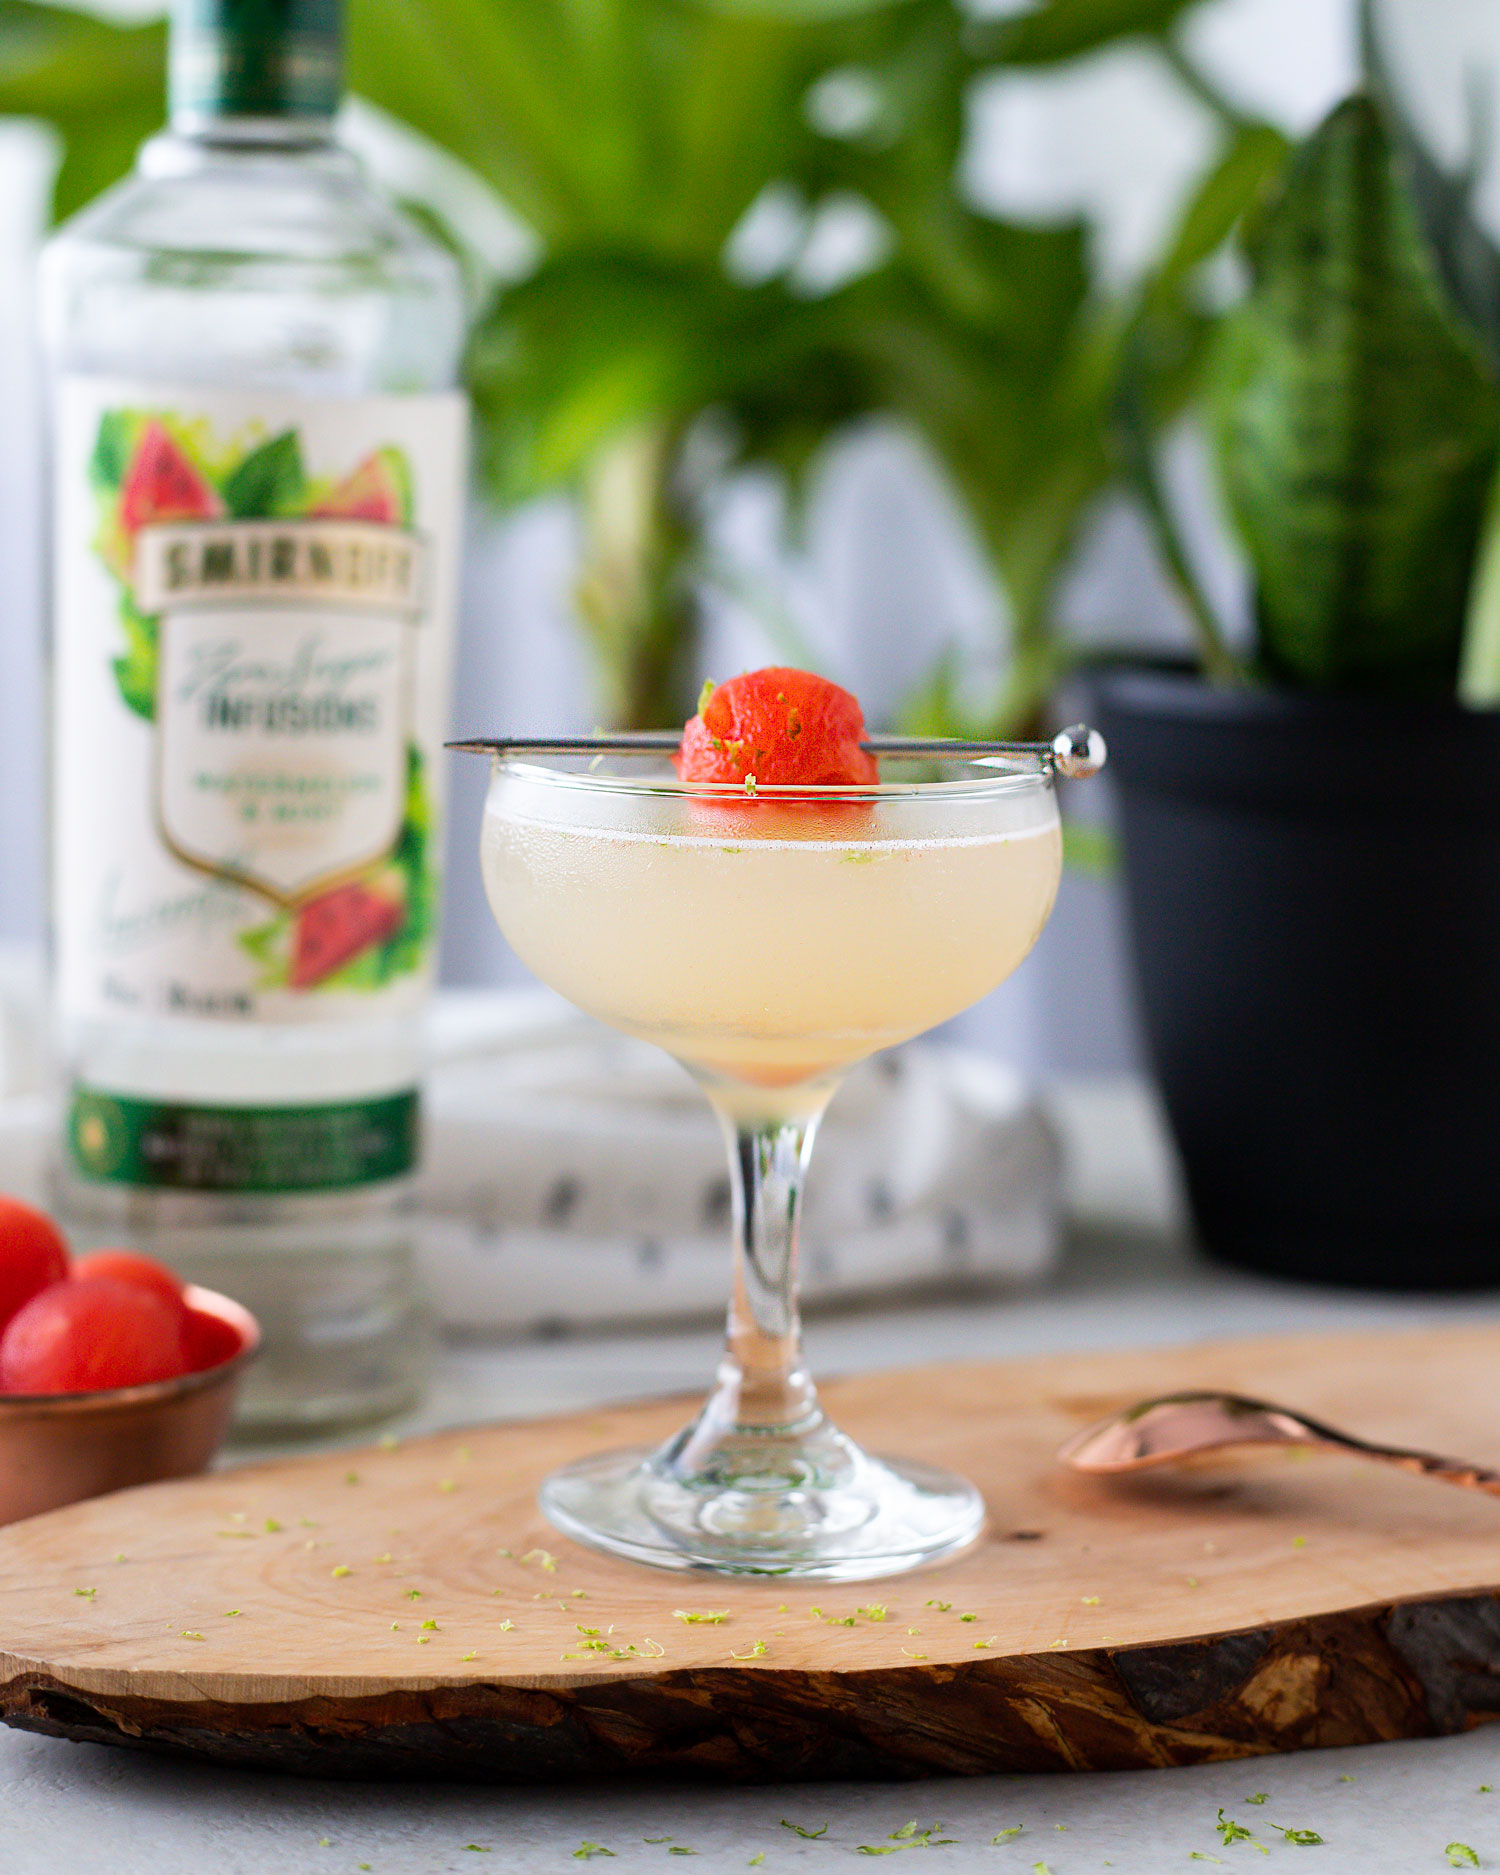 Classic Kamikaze cocktail that uses watermelon and mint vodka for a refreshing summer spin on this sweet vodka martini. Uses Smirnoff Zero Sugar Infusion Vodka. #Smirnoff #SummerDrinks #CocktailRecipe #VodkaDrink #VodkaCocktail #MartiniRecipe #Kamikaze #DrinkRecipe